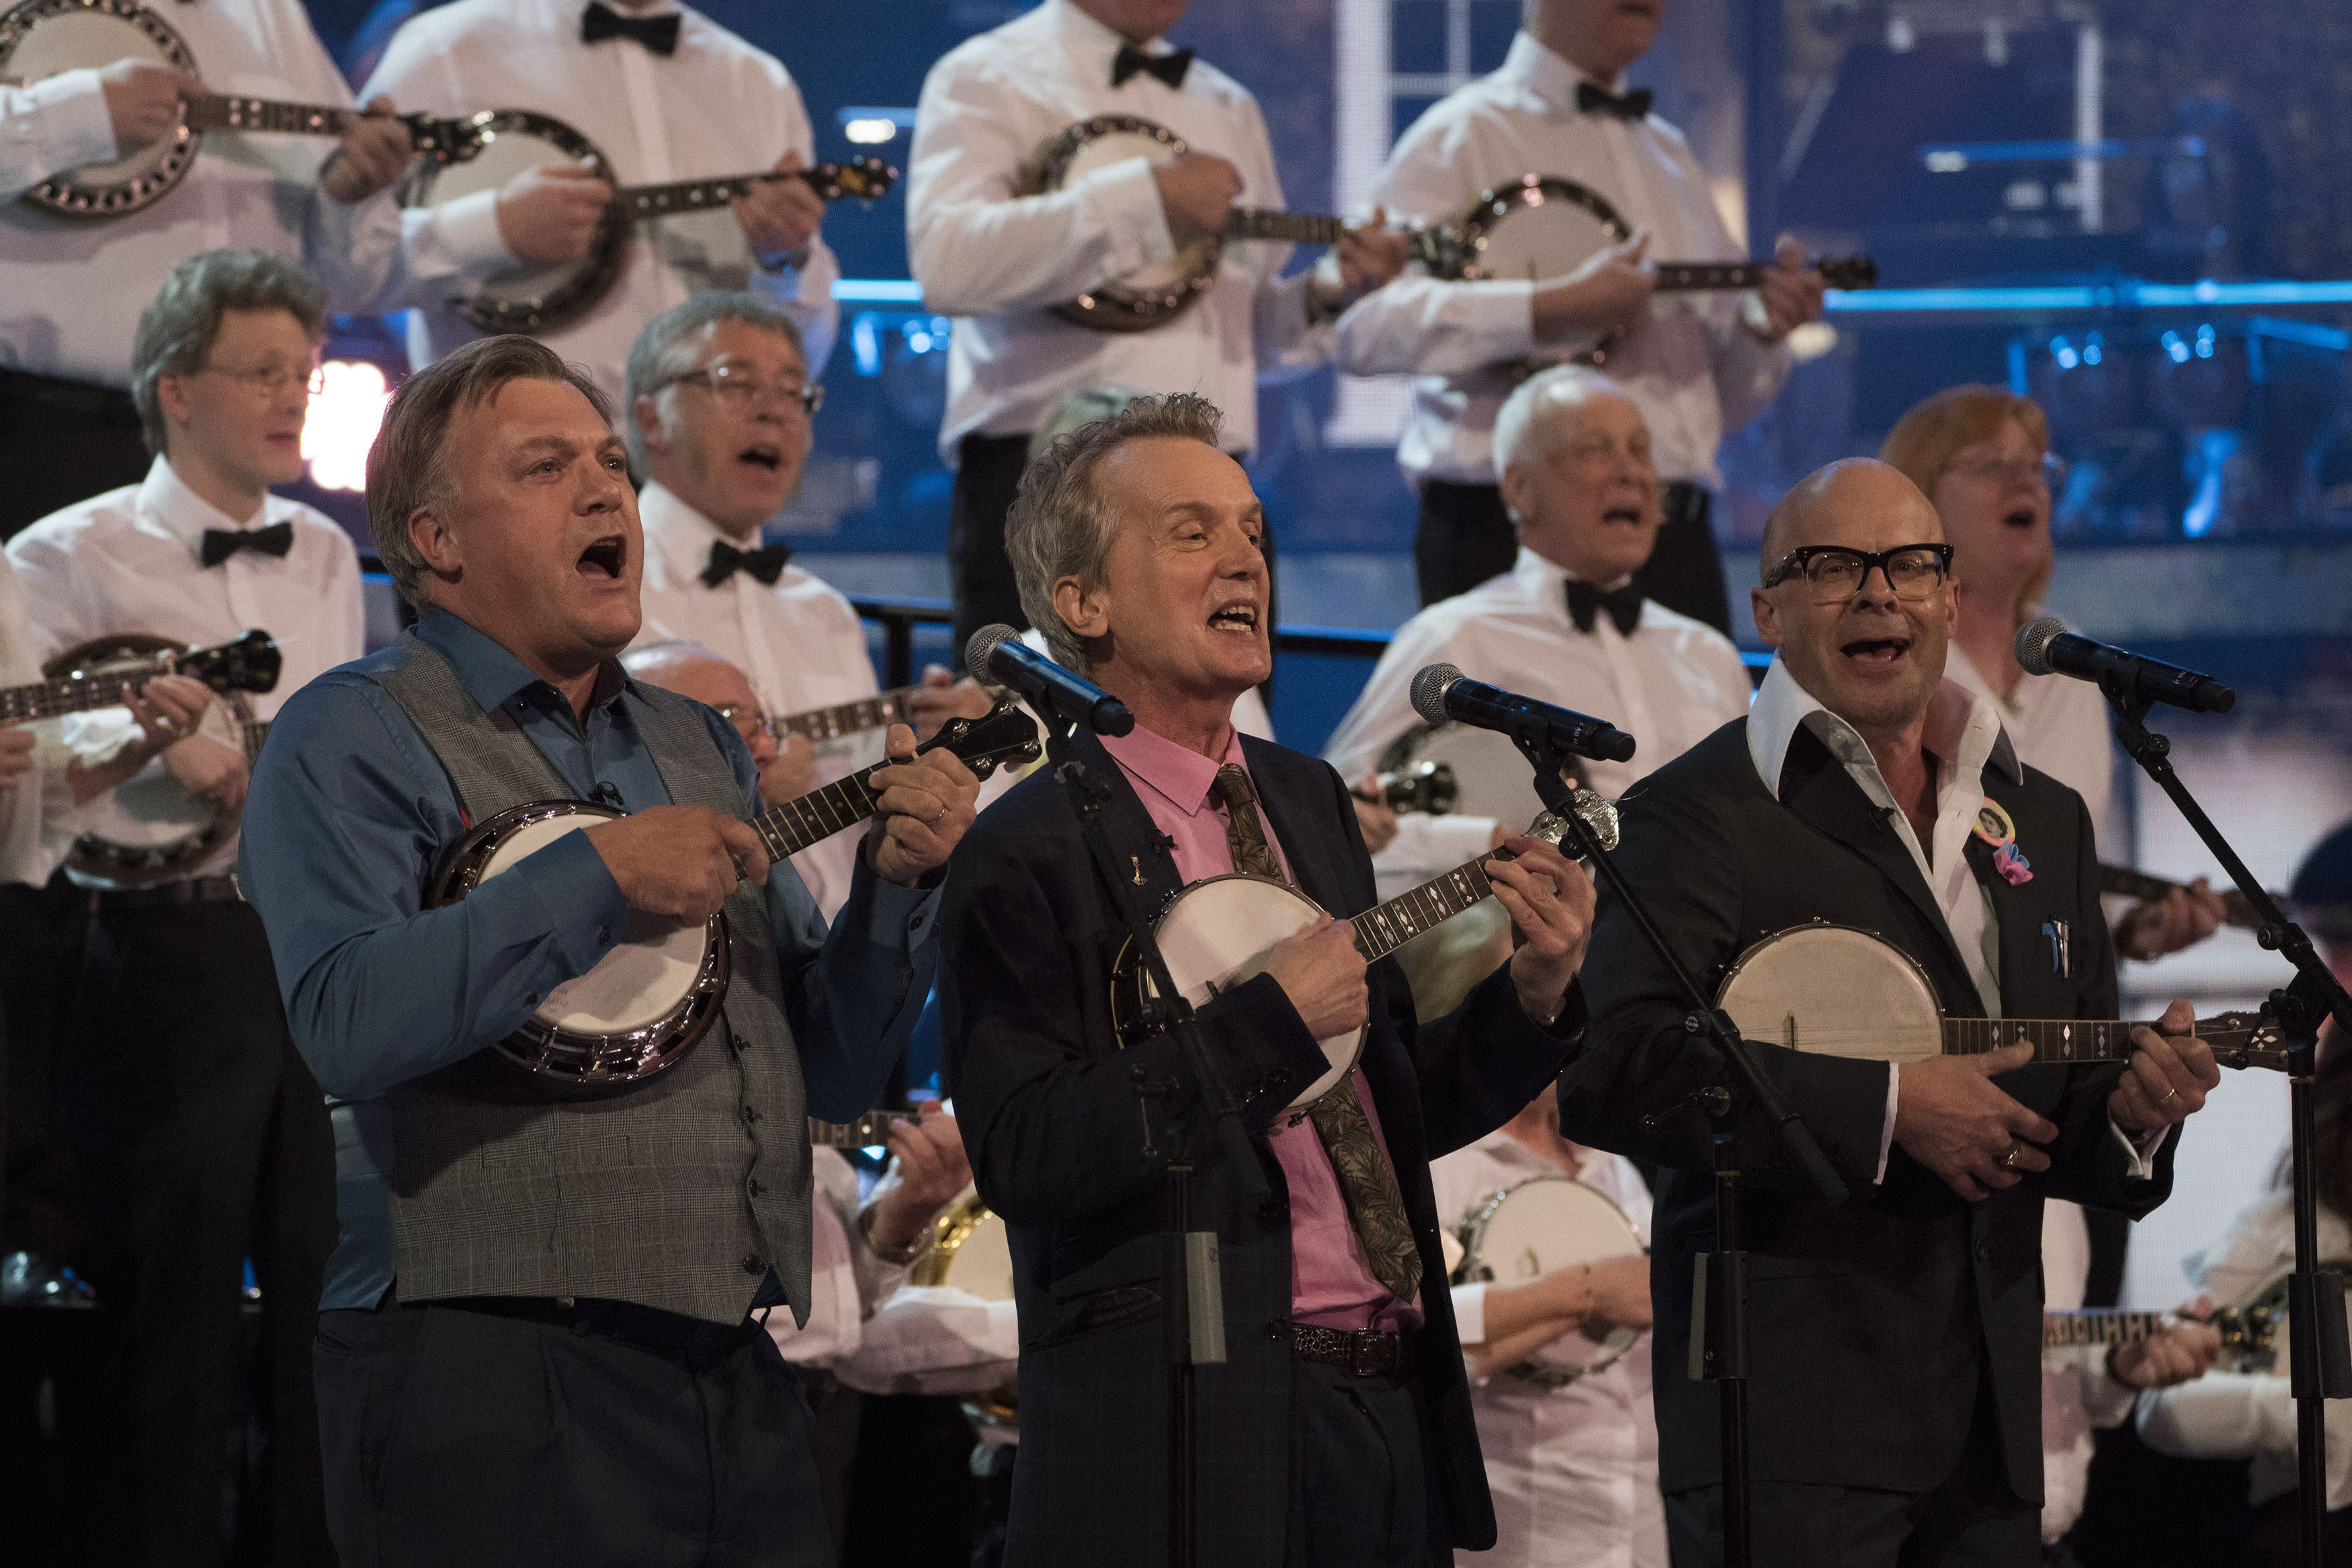 Ed Balls, Frank Skinner and Harry Hill perform for the Queen (Picture: PA)